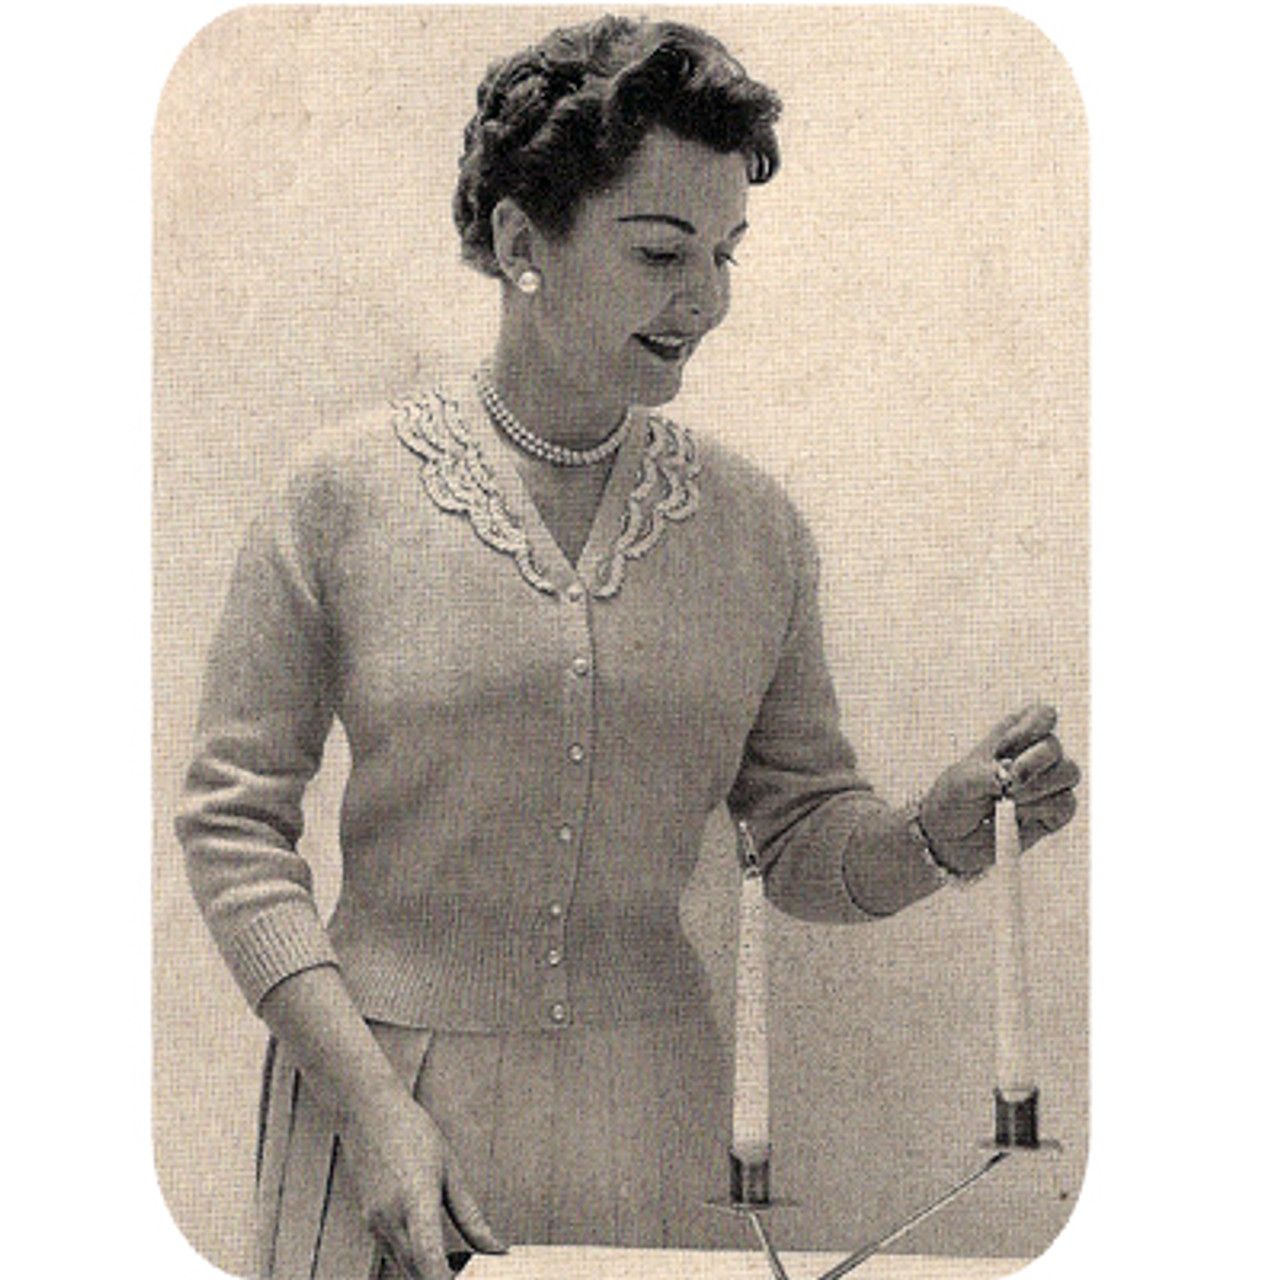 Knitted Long Sleeve Lace Trimmed Blouse Pattern